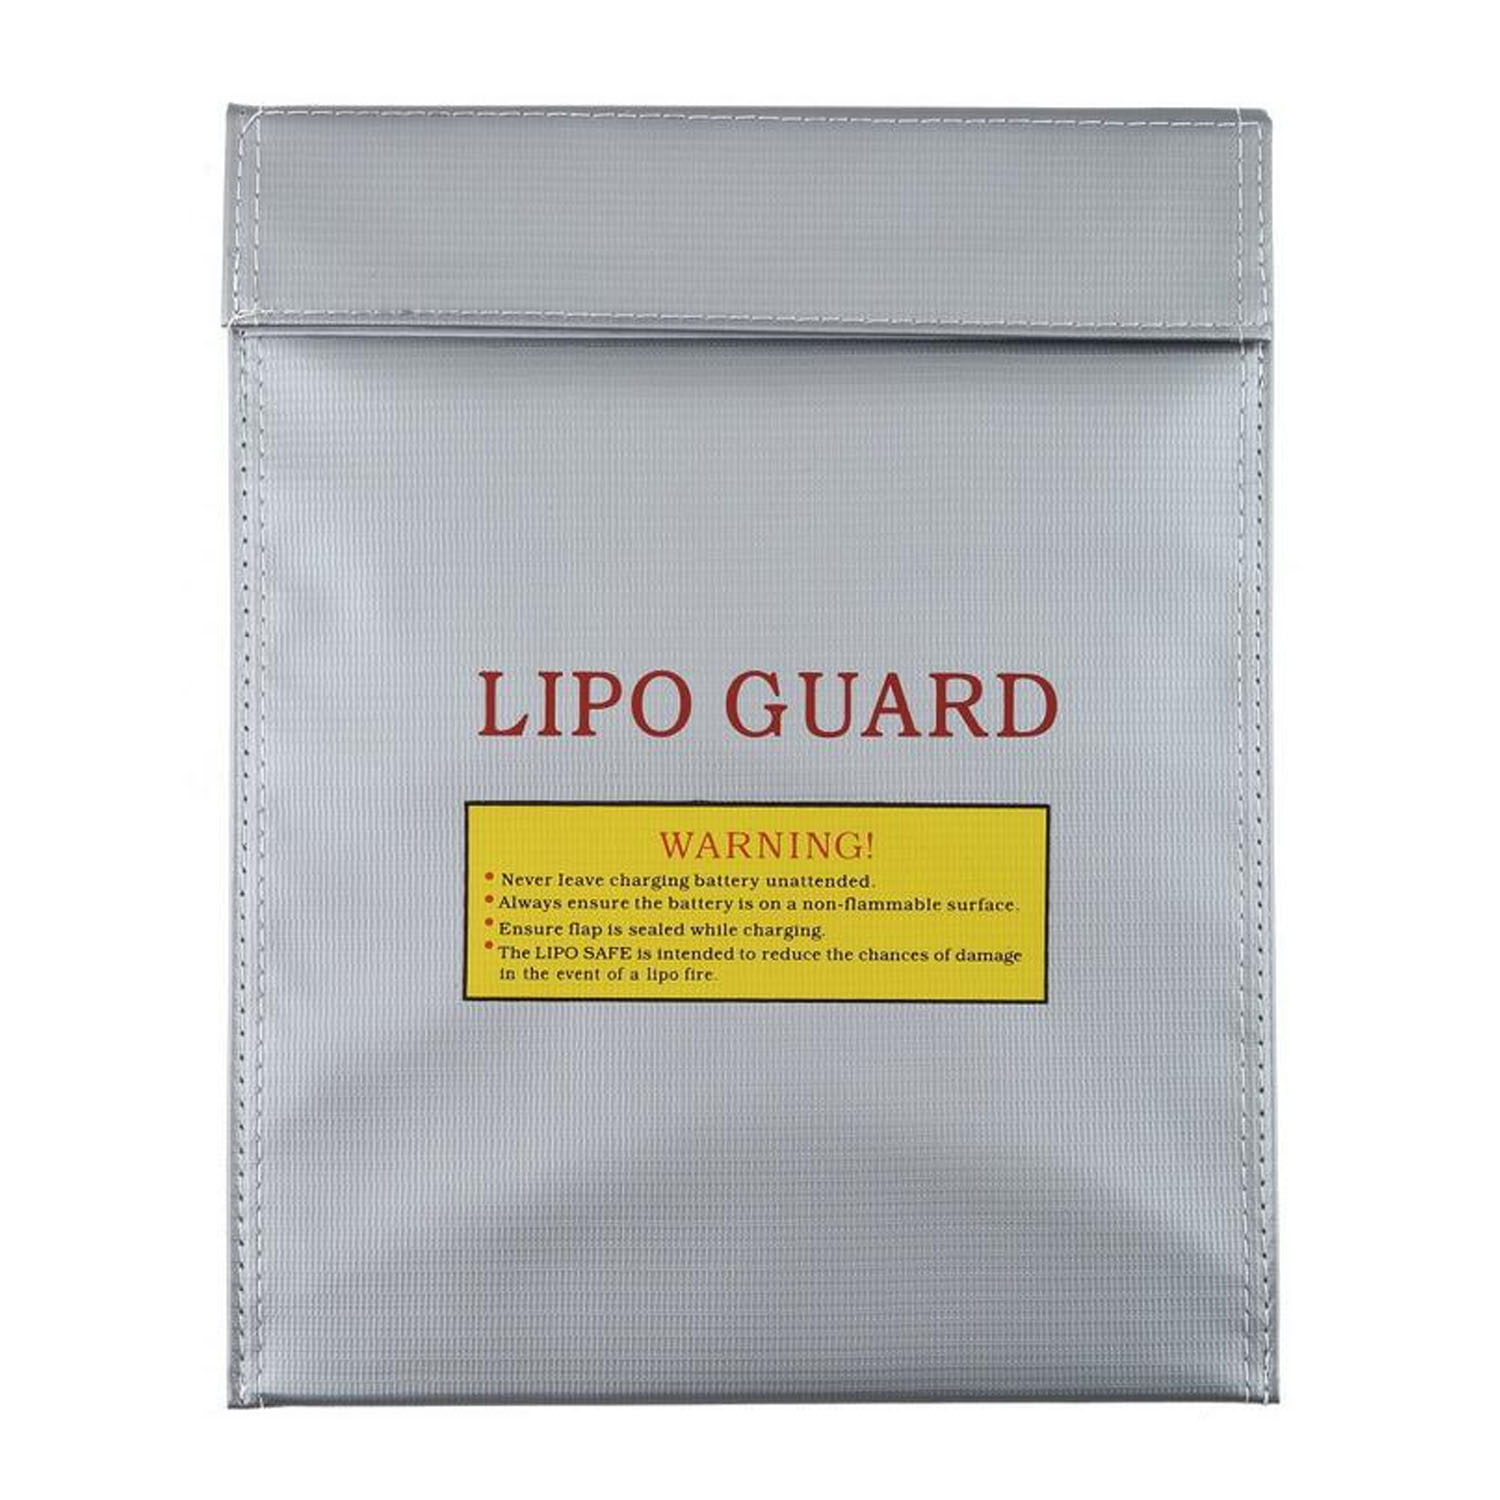 1 pcs Heat-resistance Explosion-proof Fireproof RC LiPo Li-Po Battery Charging Sack Safe Safety Guard Bag Sleeve 7 x 9 Inch